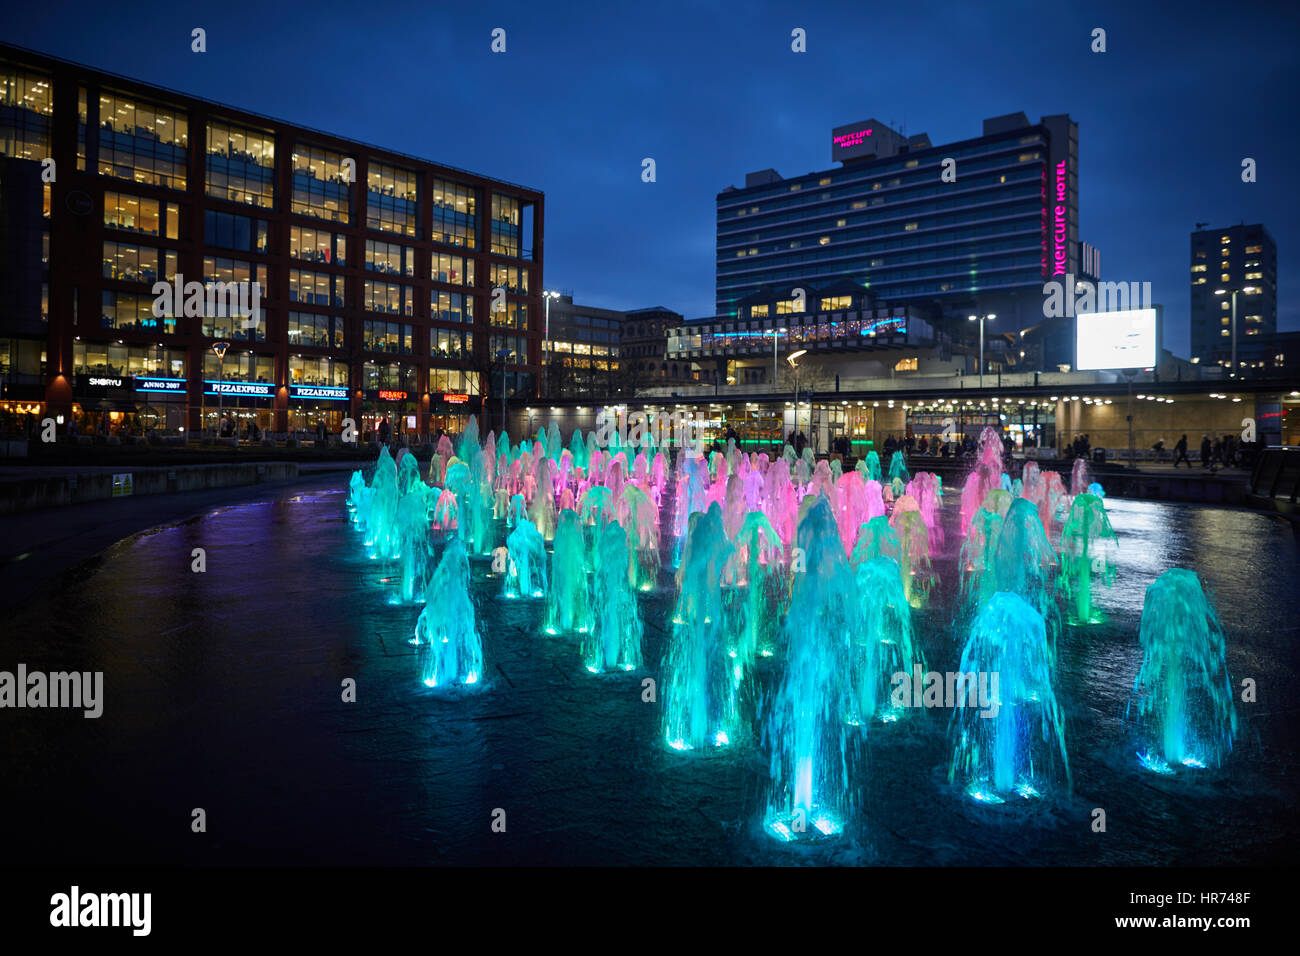 MANCHESTER City Centre, Piccadilly Gardens landmark water fountain display lights at night. - Stock Image